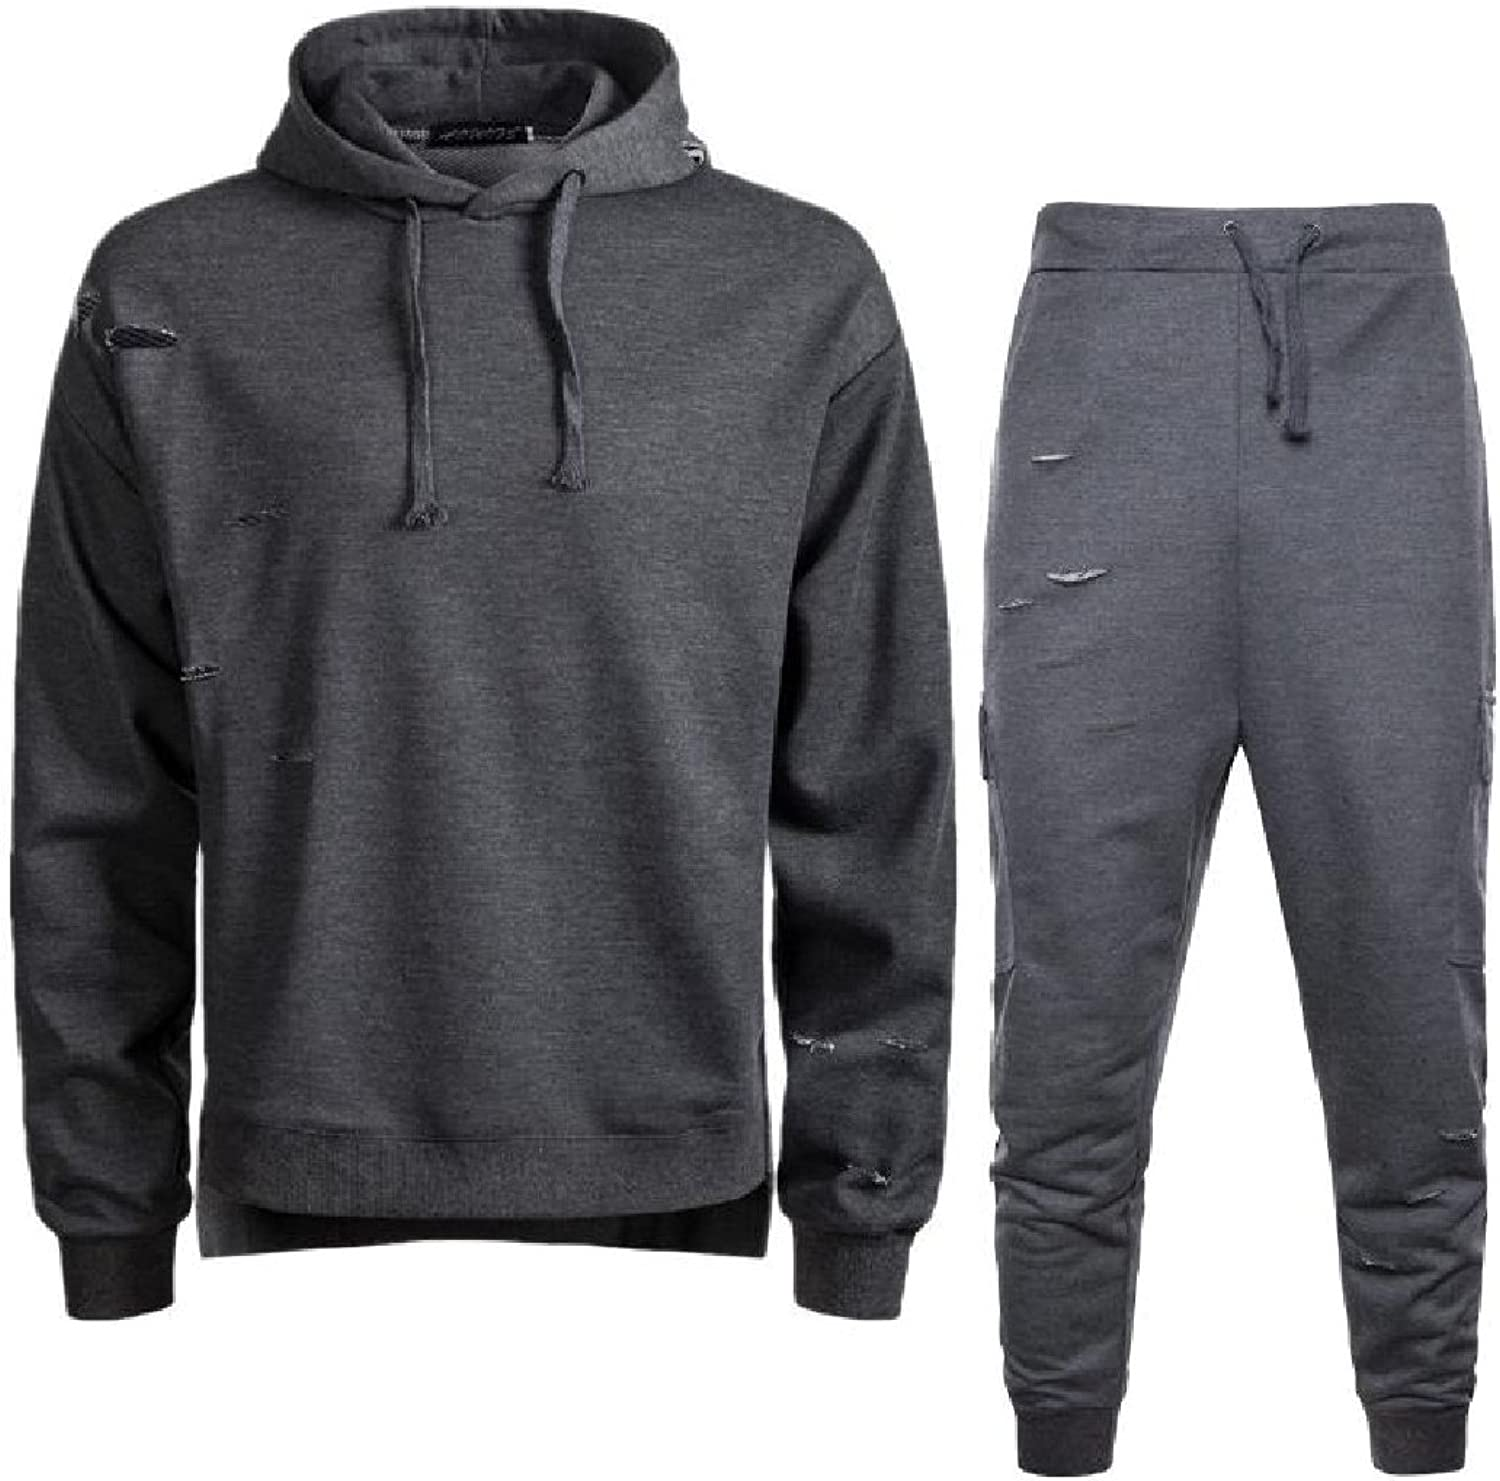 Comaba Men Ripped Distressed Hood Tracksuits Tops Outwear and Pants Outfit